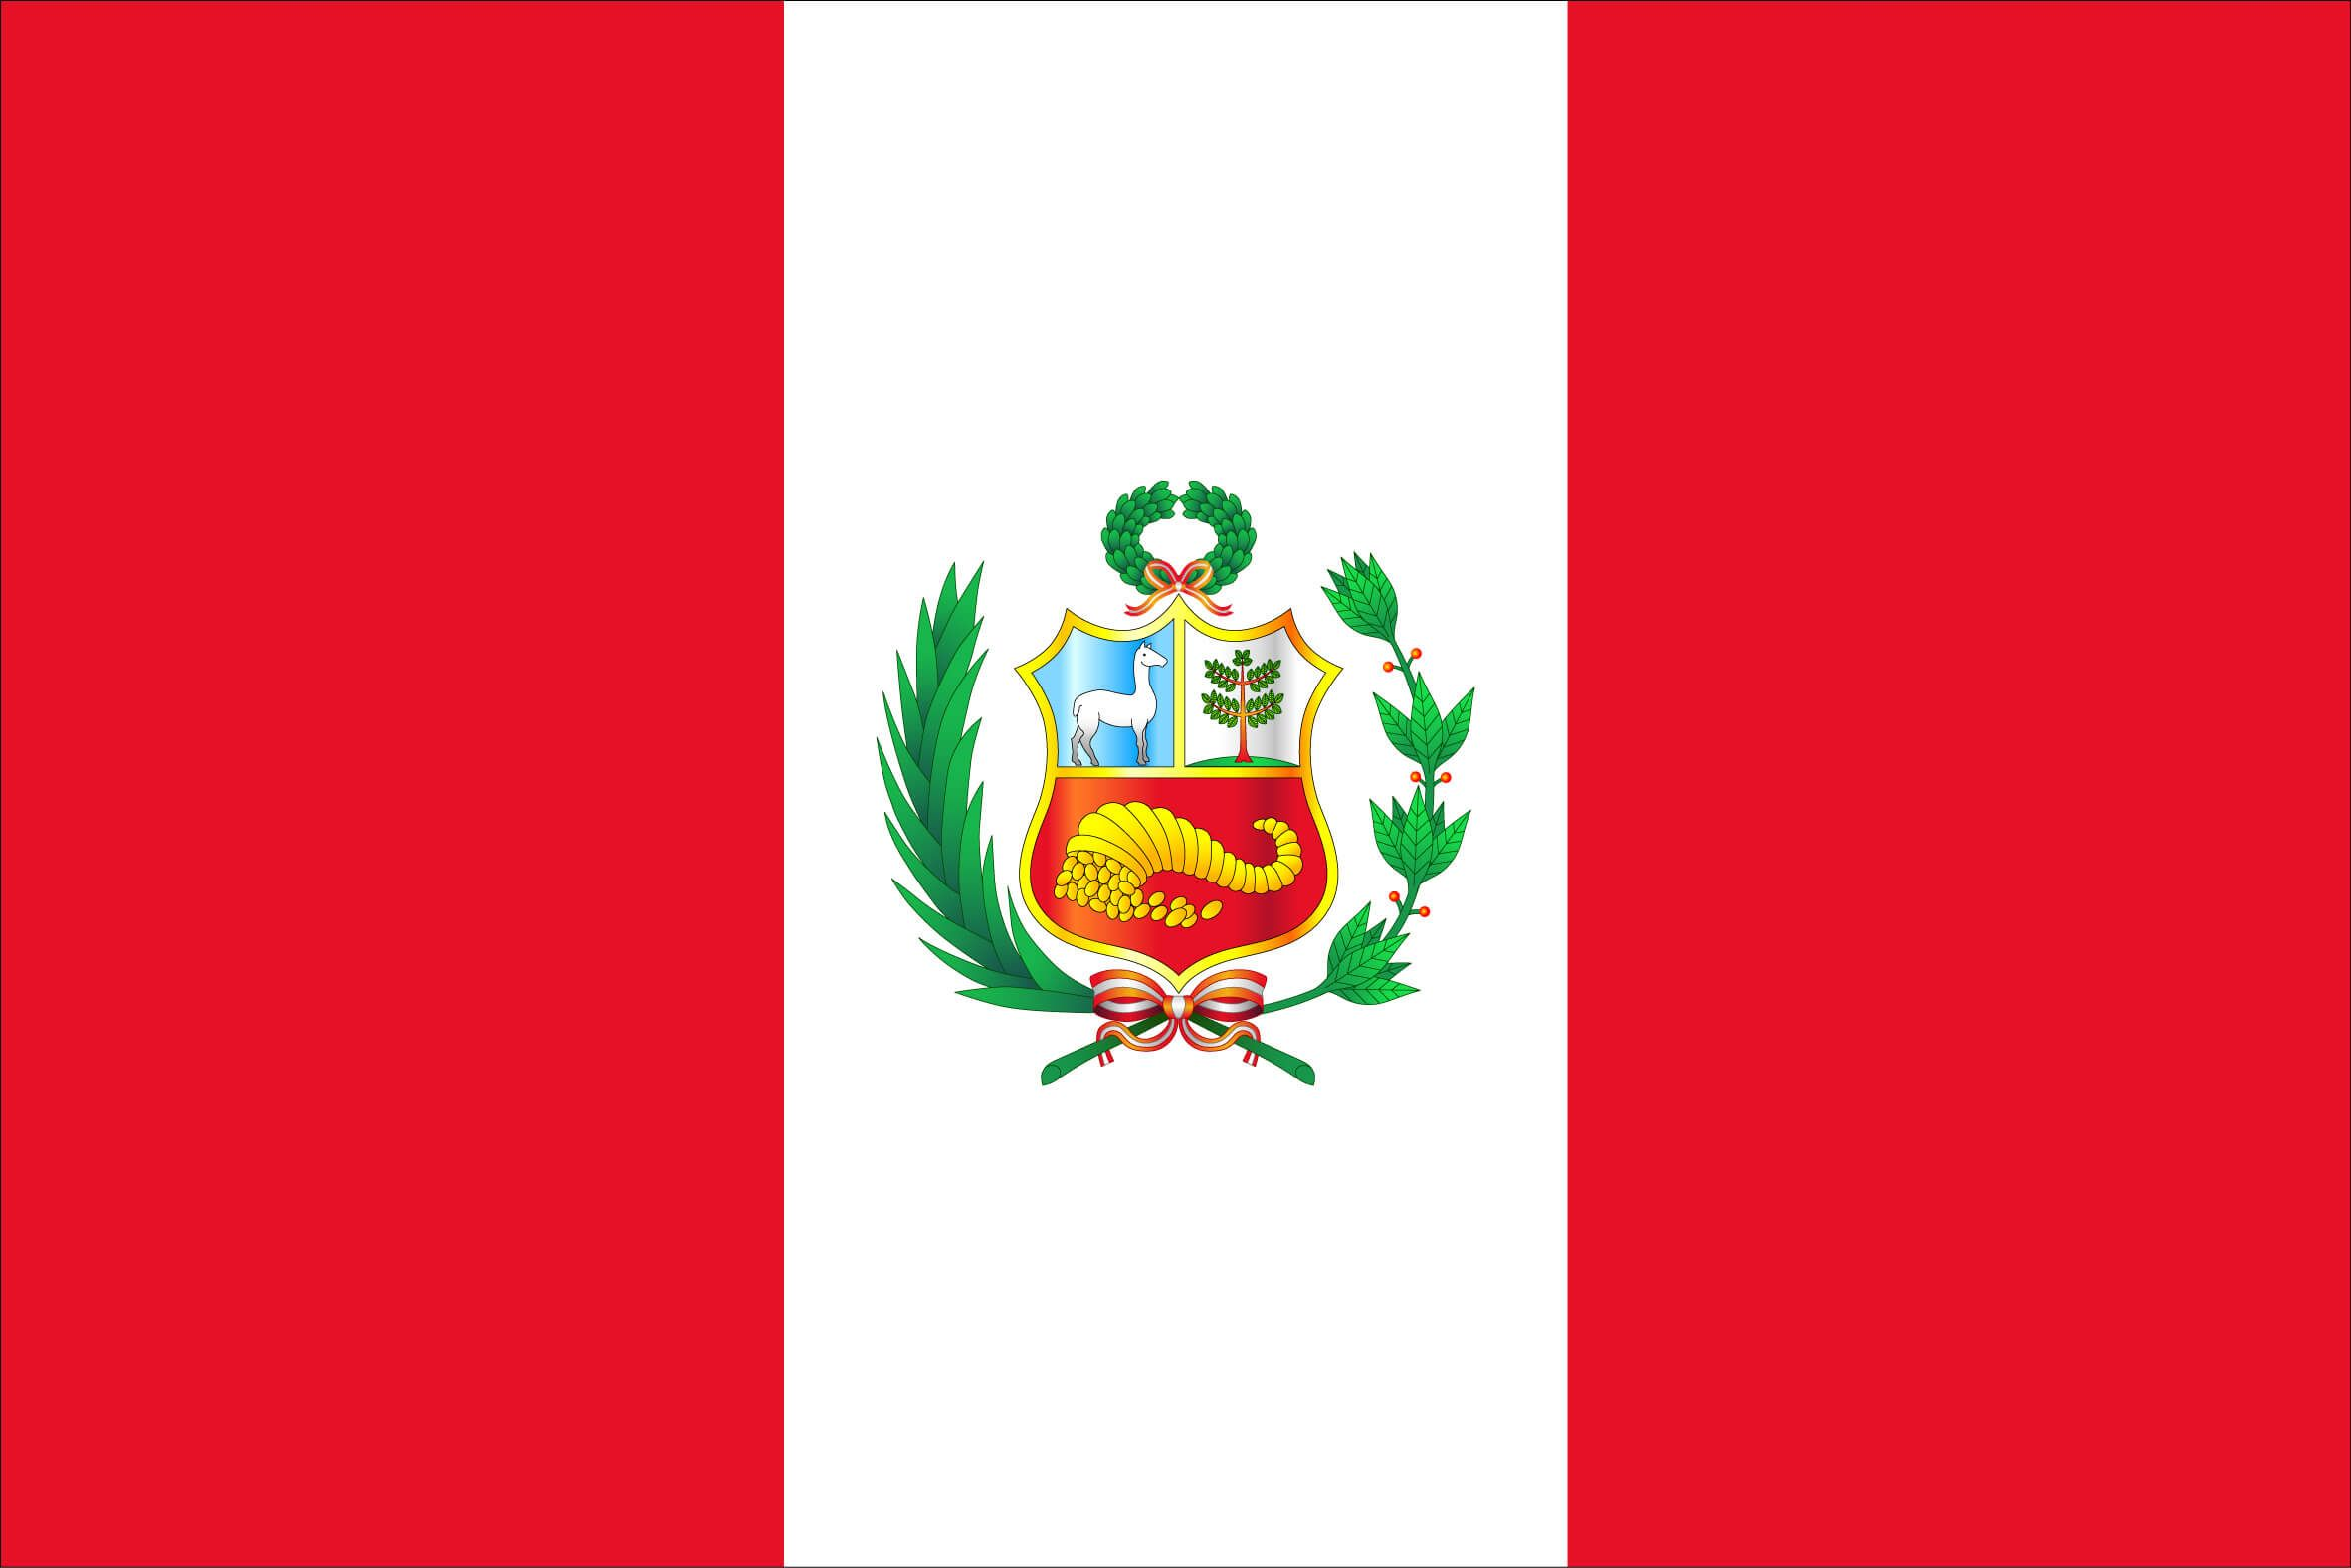 Peru Flag colors - Peru Flag meaning & history | Flags | Pinterest